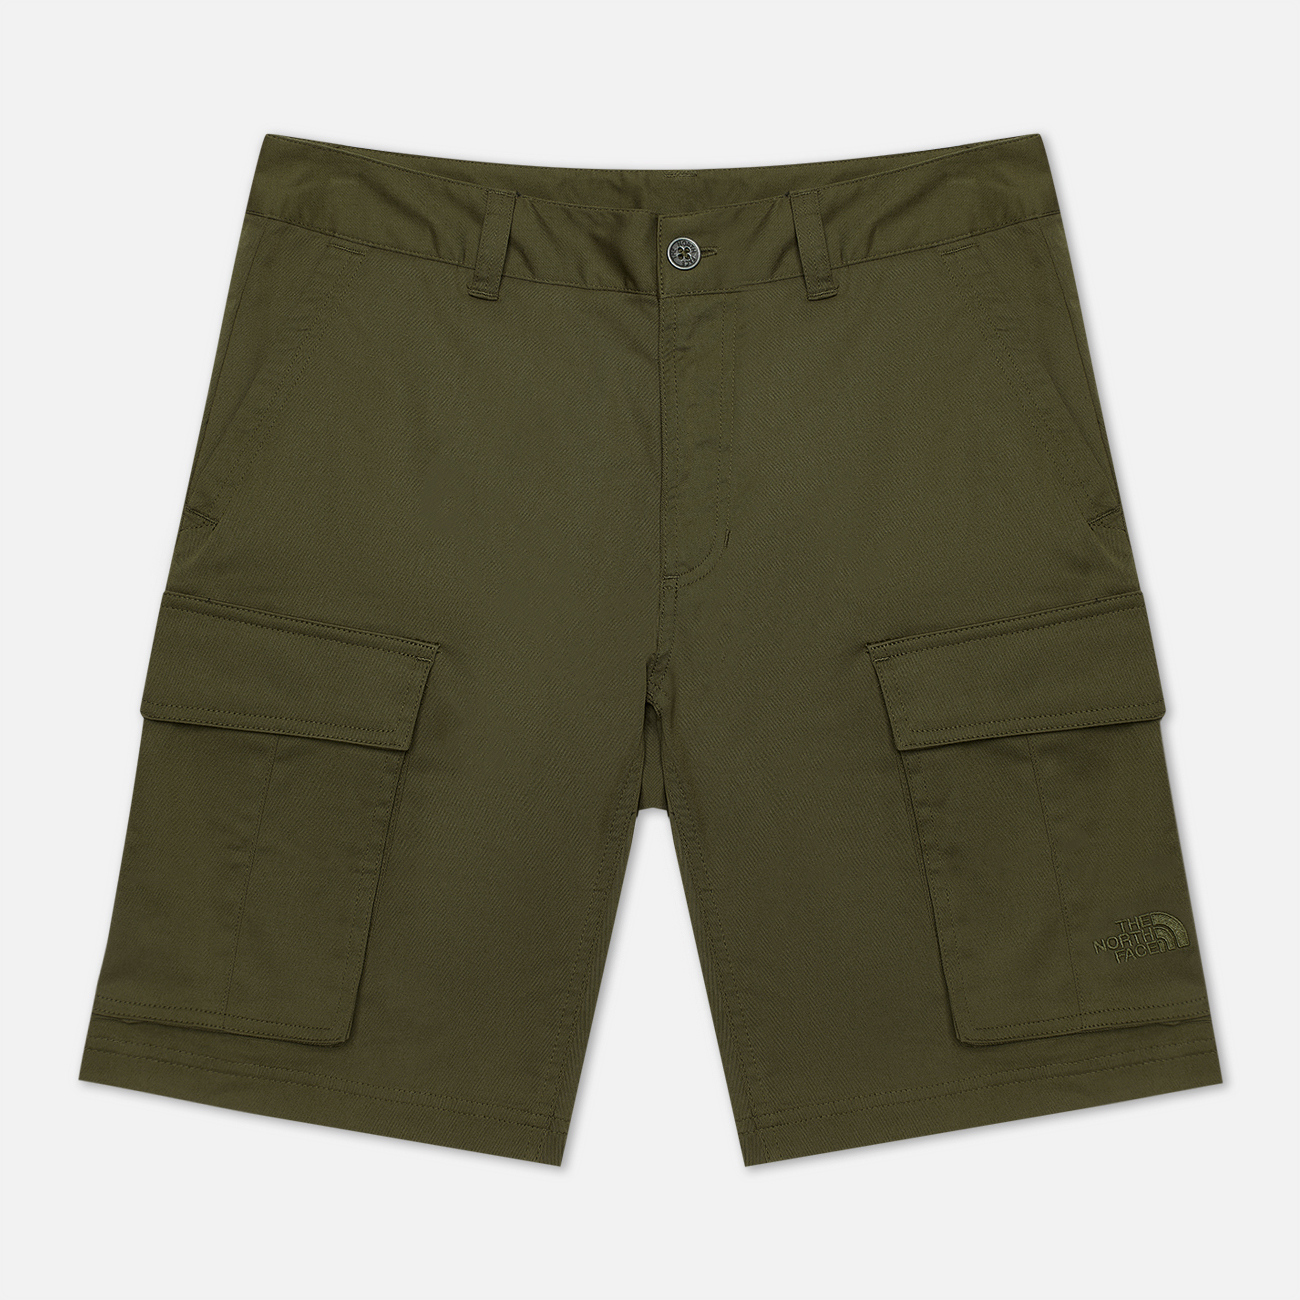 Мужские шорты The North Face Anticline Cargo Burnt Olive Green